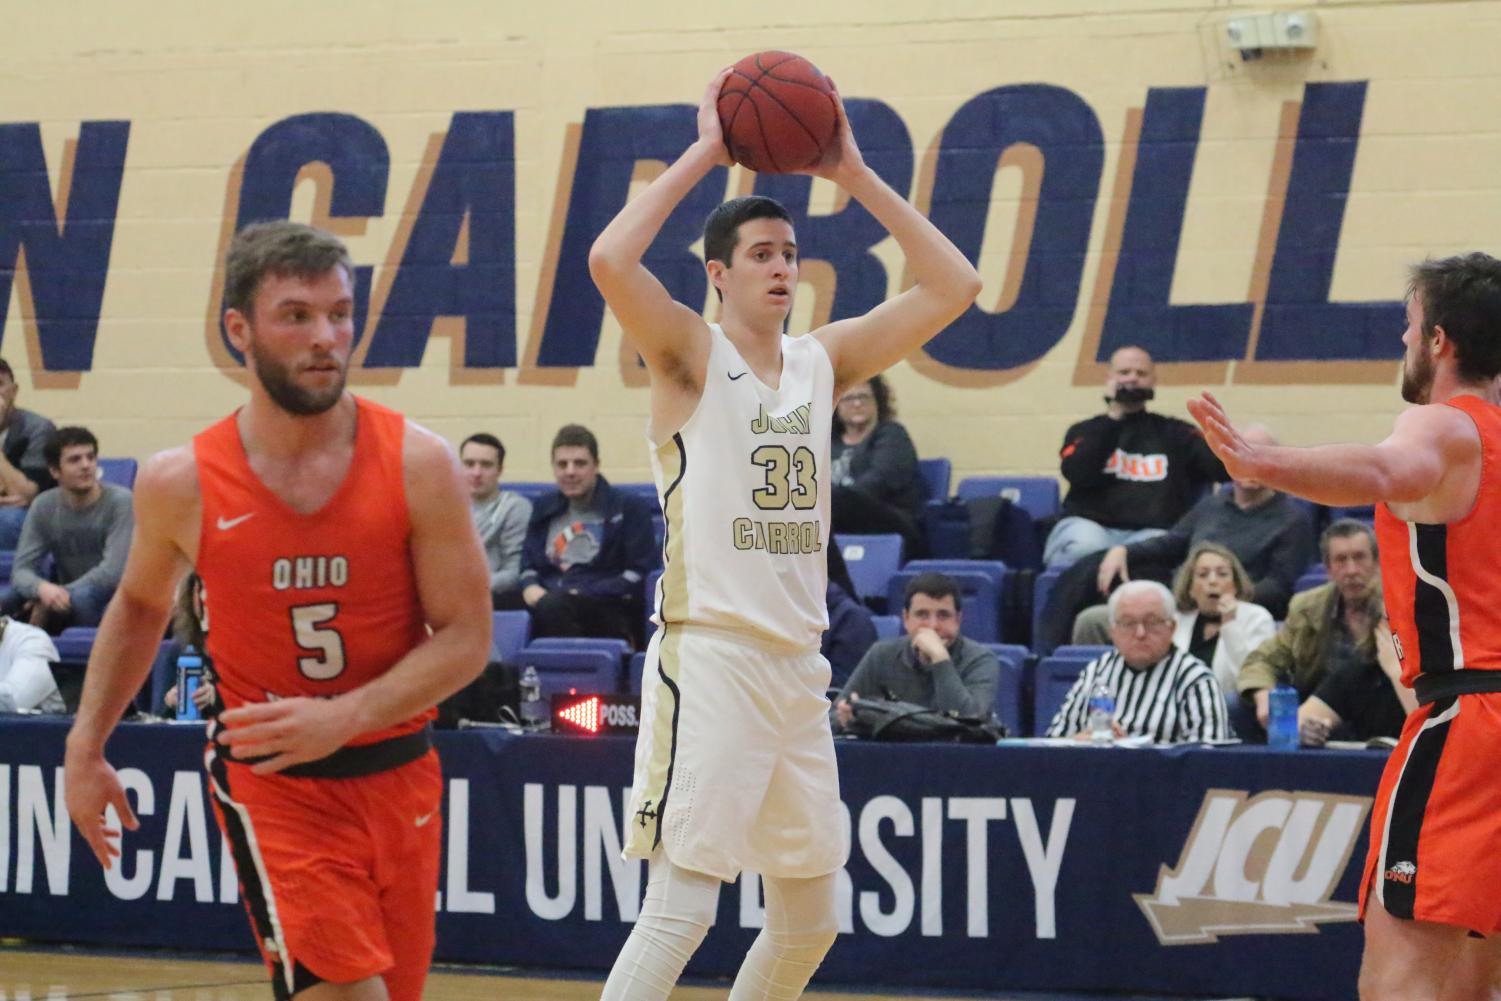 Freshman Emmett Chambers (33) looks to make a pass in a game against Ohio Northern on Feb. 9 at JCU.